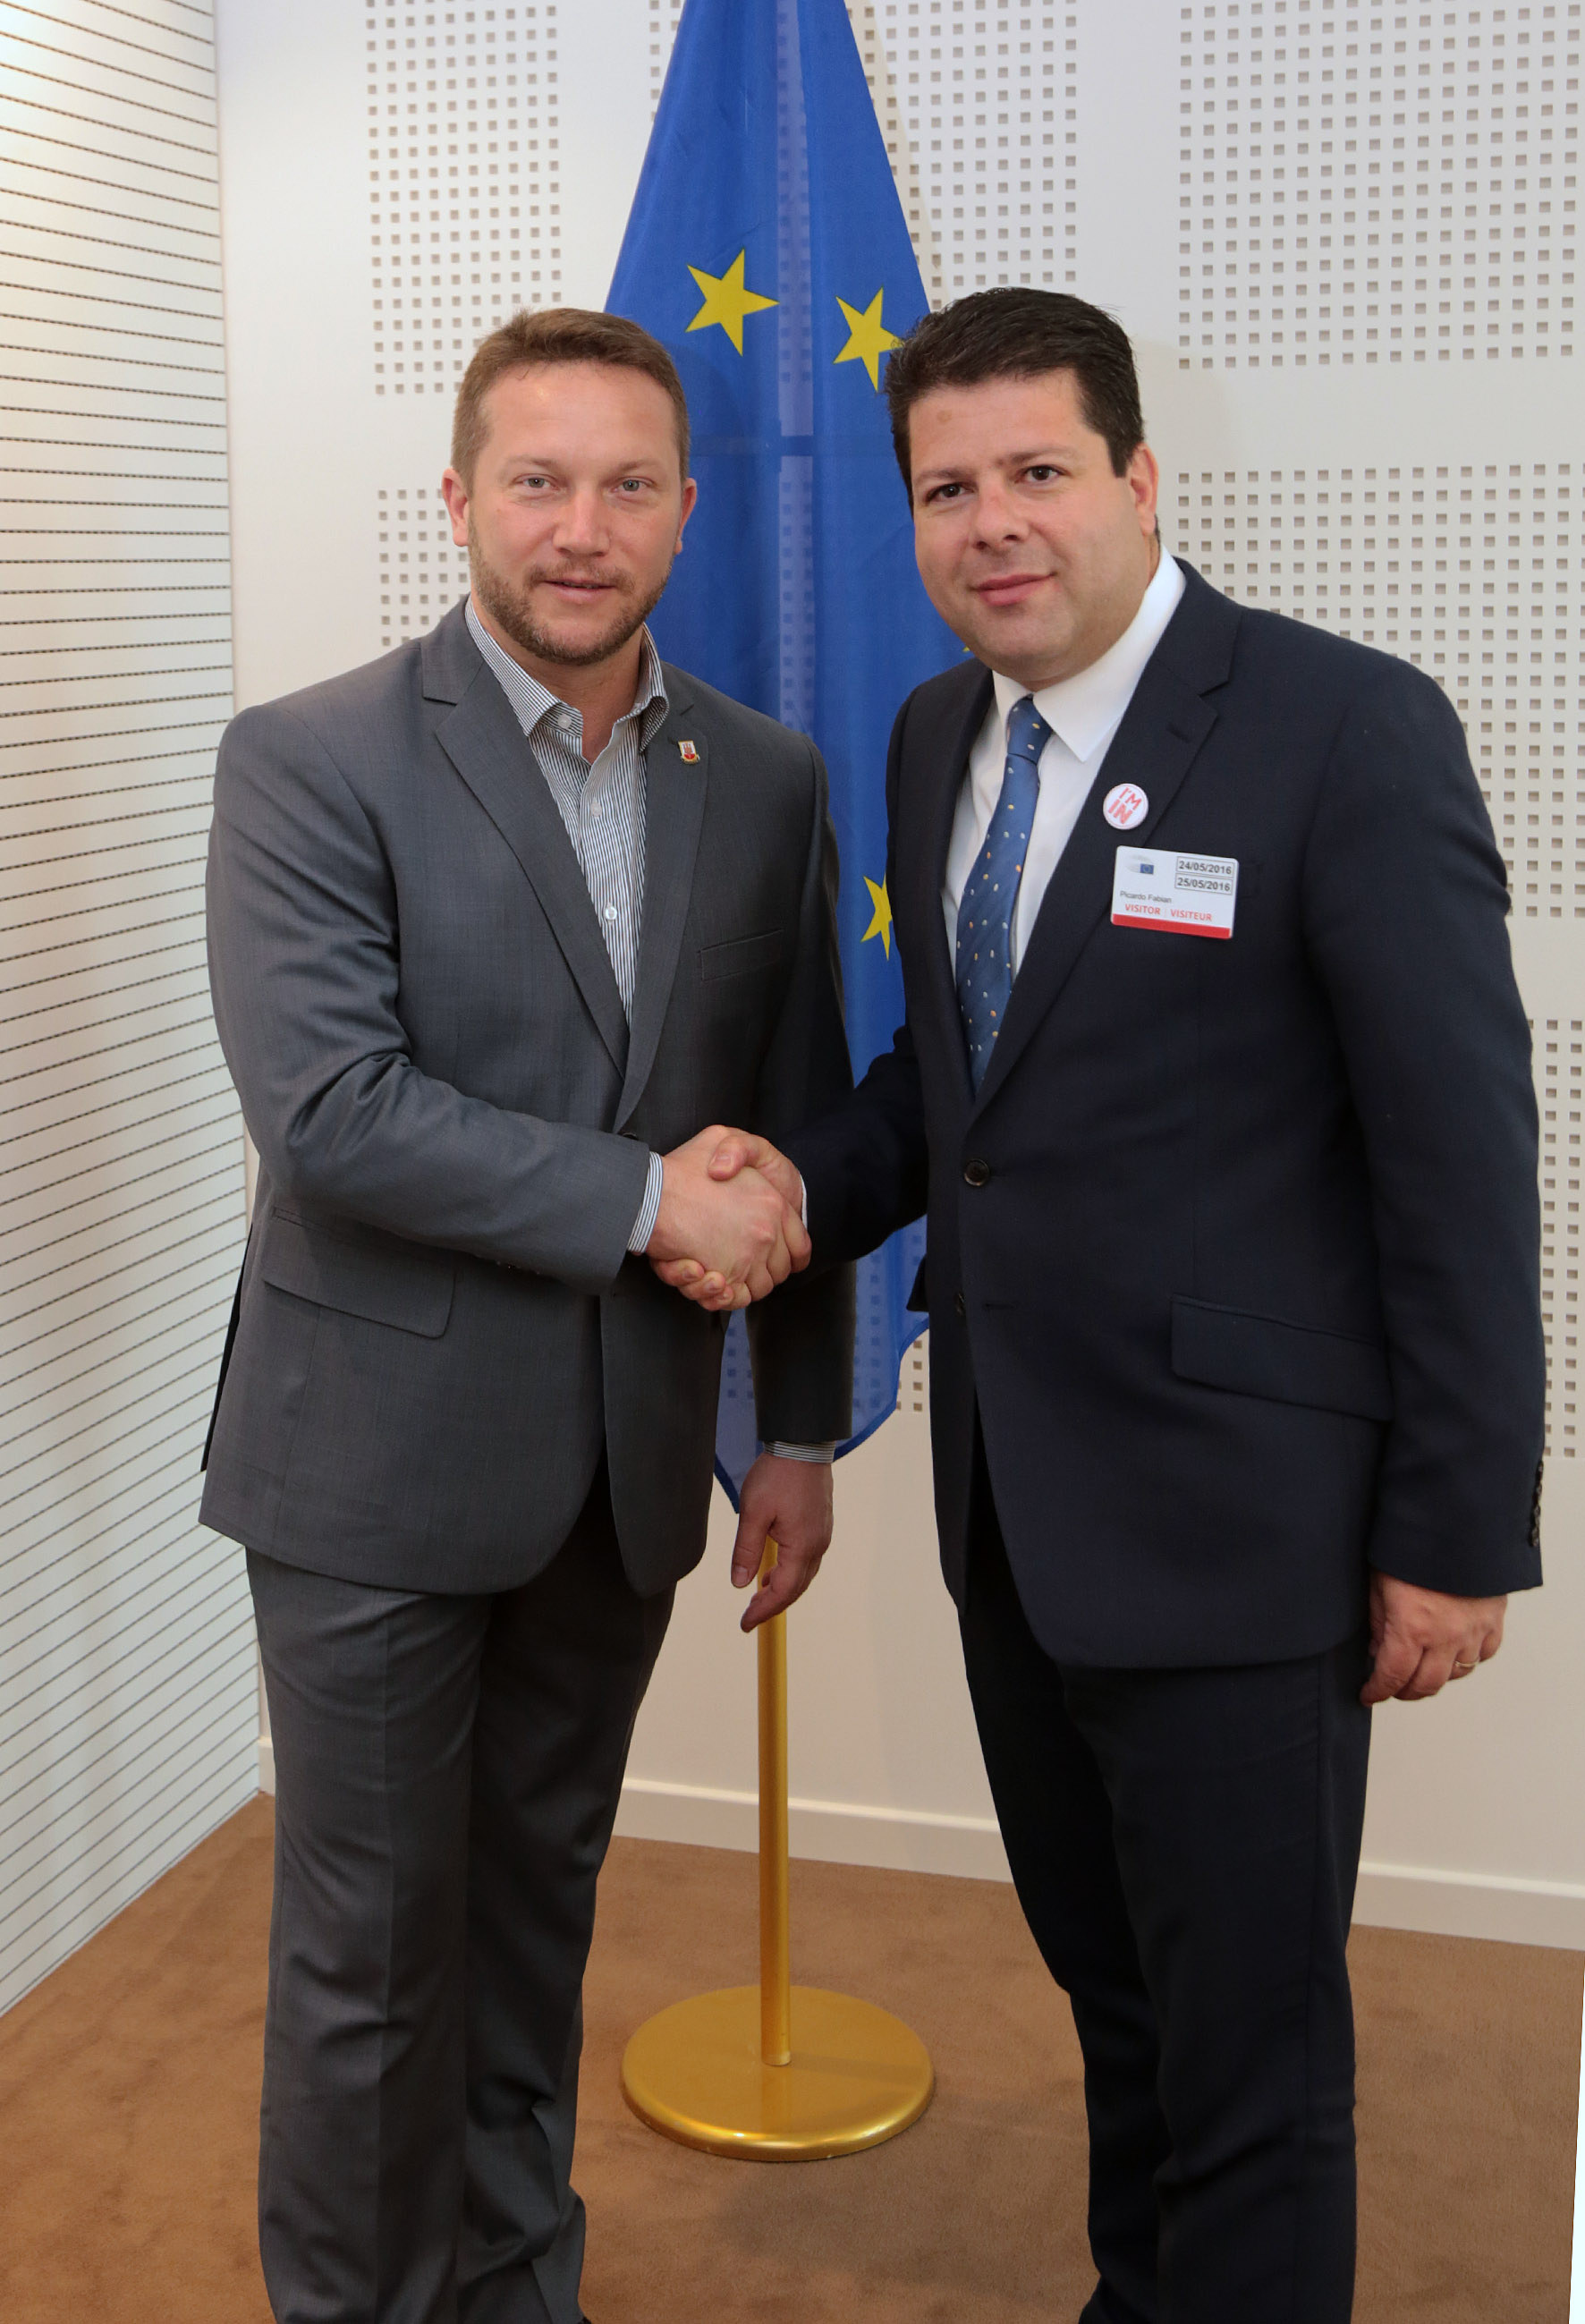 The Gibraltar delegation met several MEPs from the Transport Committee of the European Parliament. The Chief Minister is pictured with Istvan Ujhelyi, a Hungarian MEP who sits on the Transport Committee.